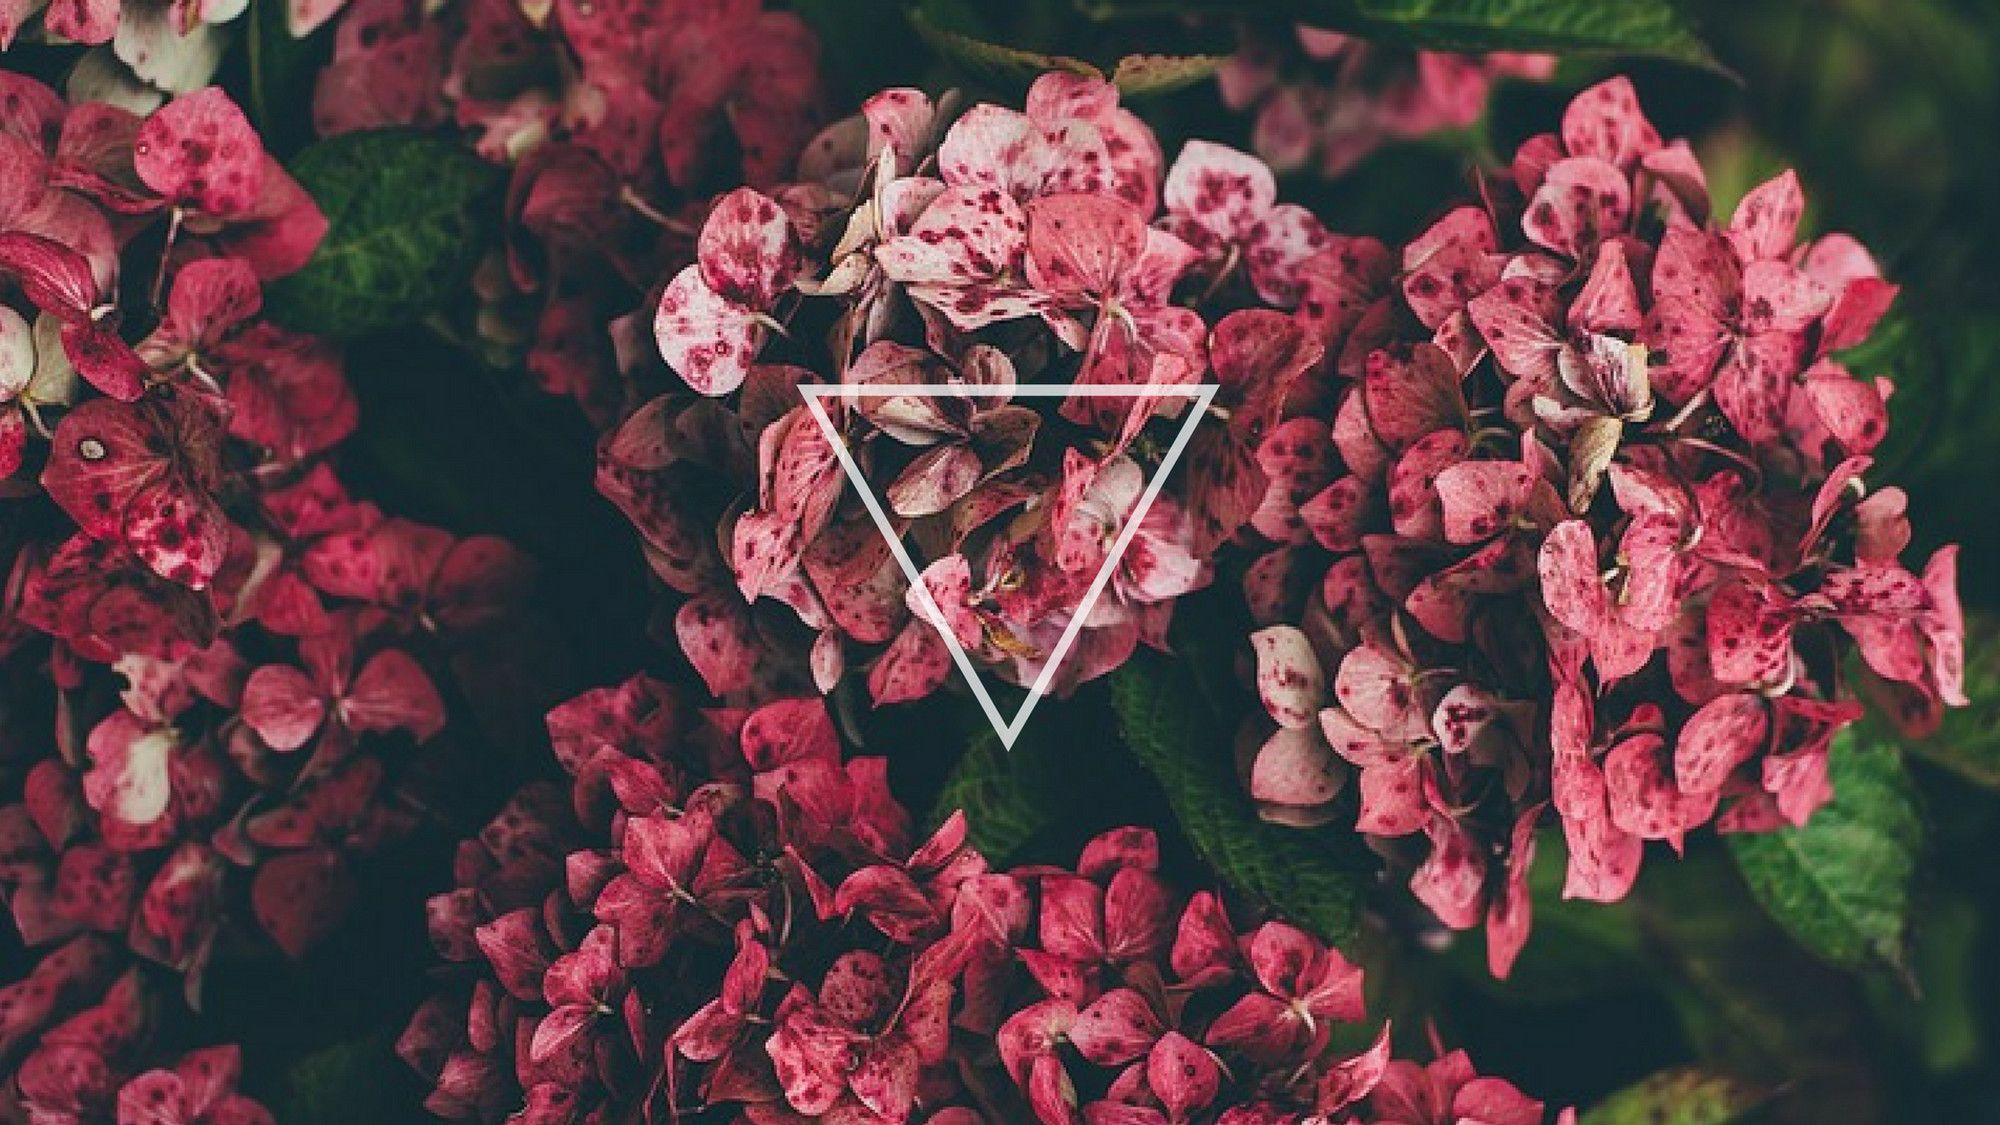 Aesthetic Flower Desktop Wallpaper Tumblr Gambar Bunga